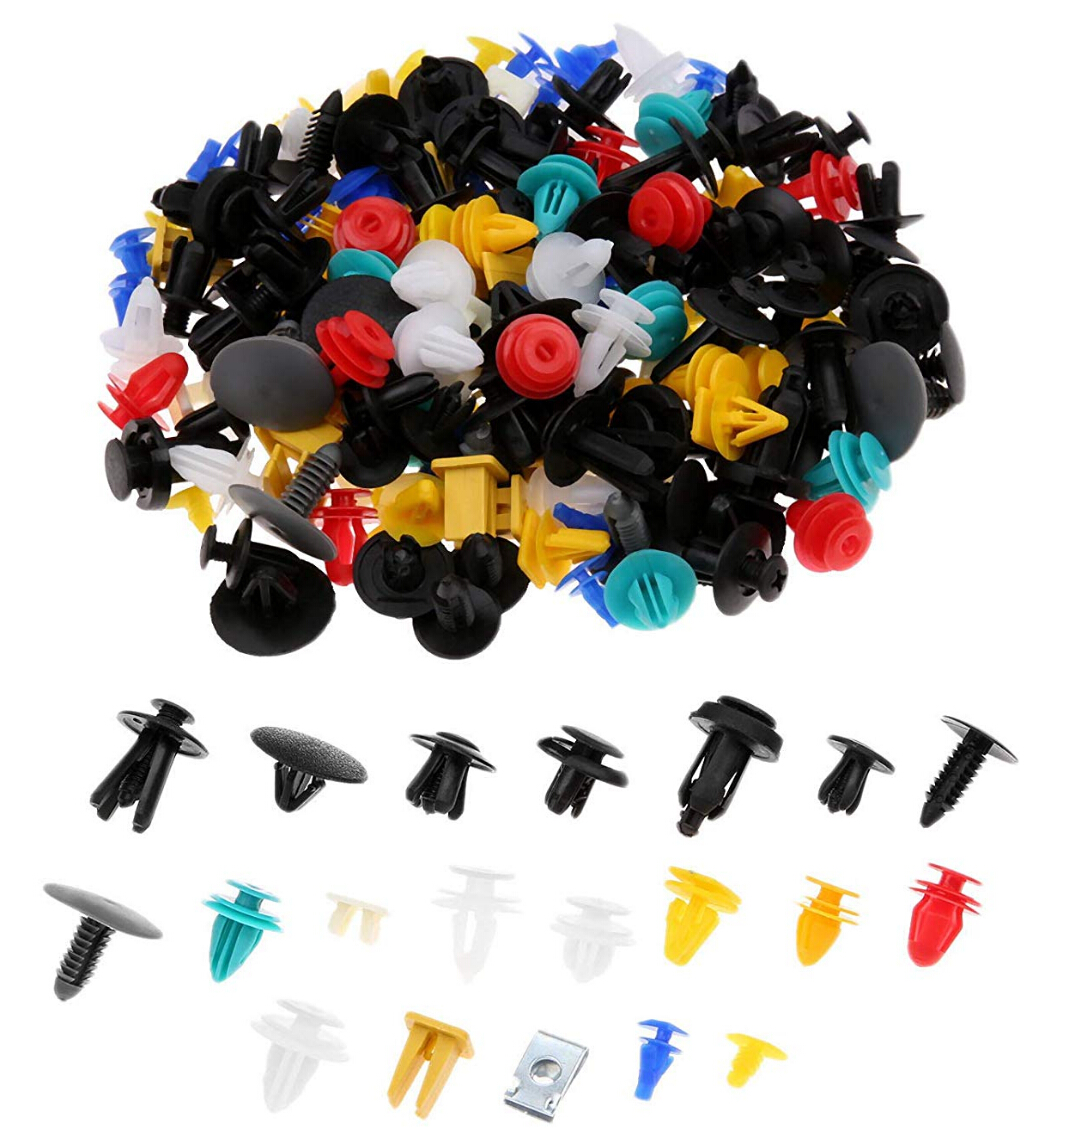 100pcs Mixed Clips For Volkswagen VW Polo Golf 4 5 6 7 Beetle MK1 MK2 MK3 MK4 MK5 MK6 Bora CC Passat B6 B5-in Car Stickers from Automobiles & Motorcycles